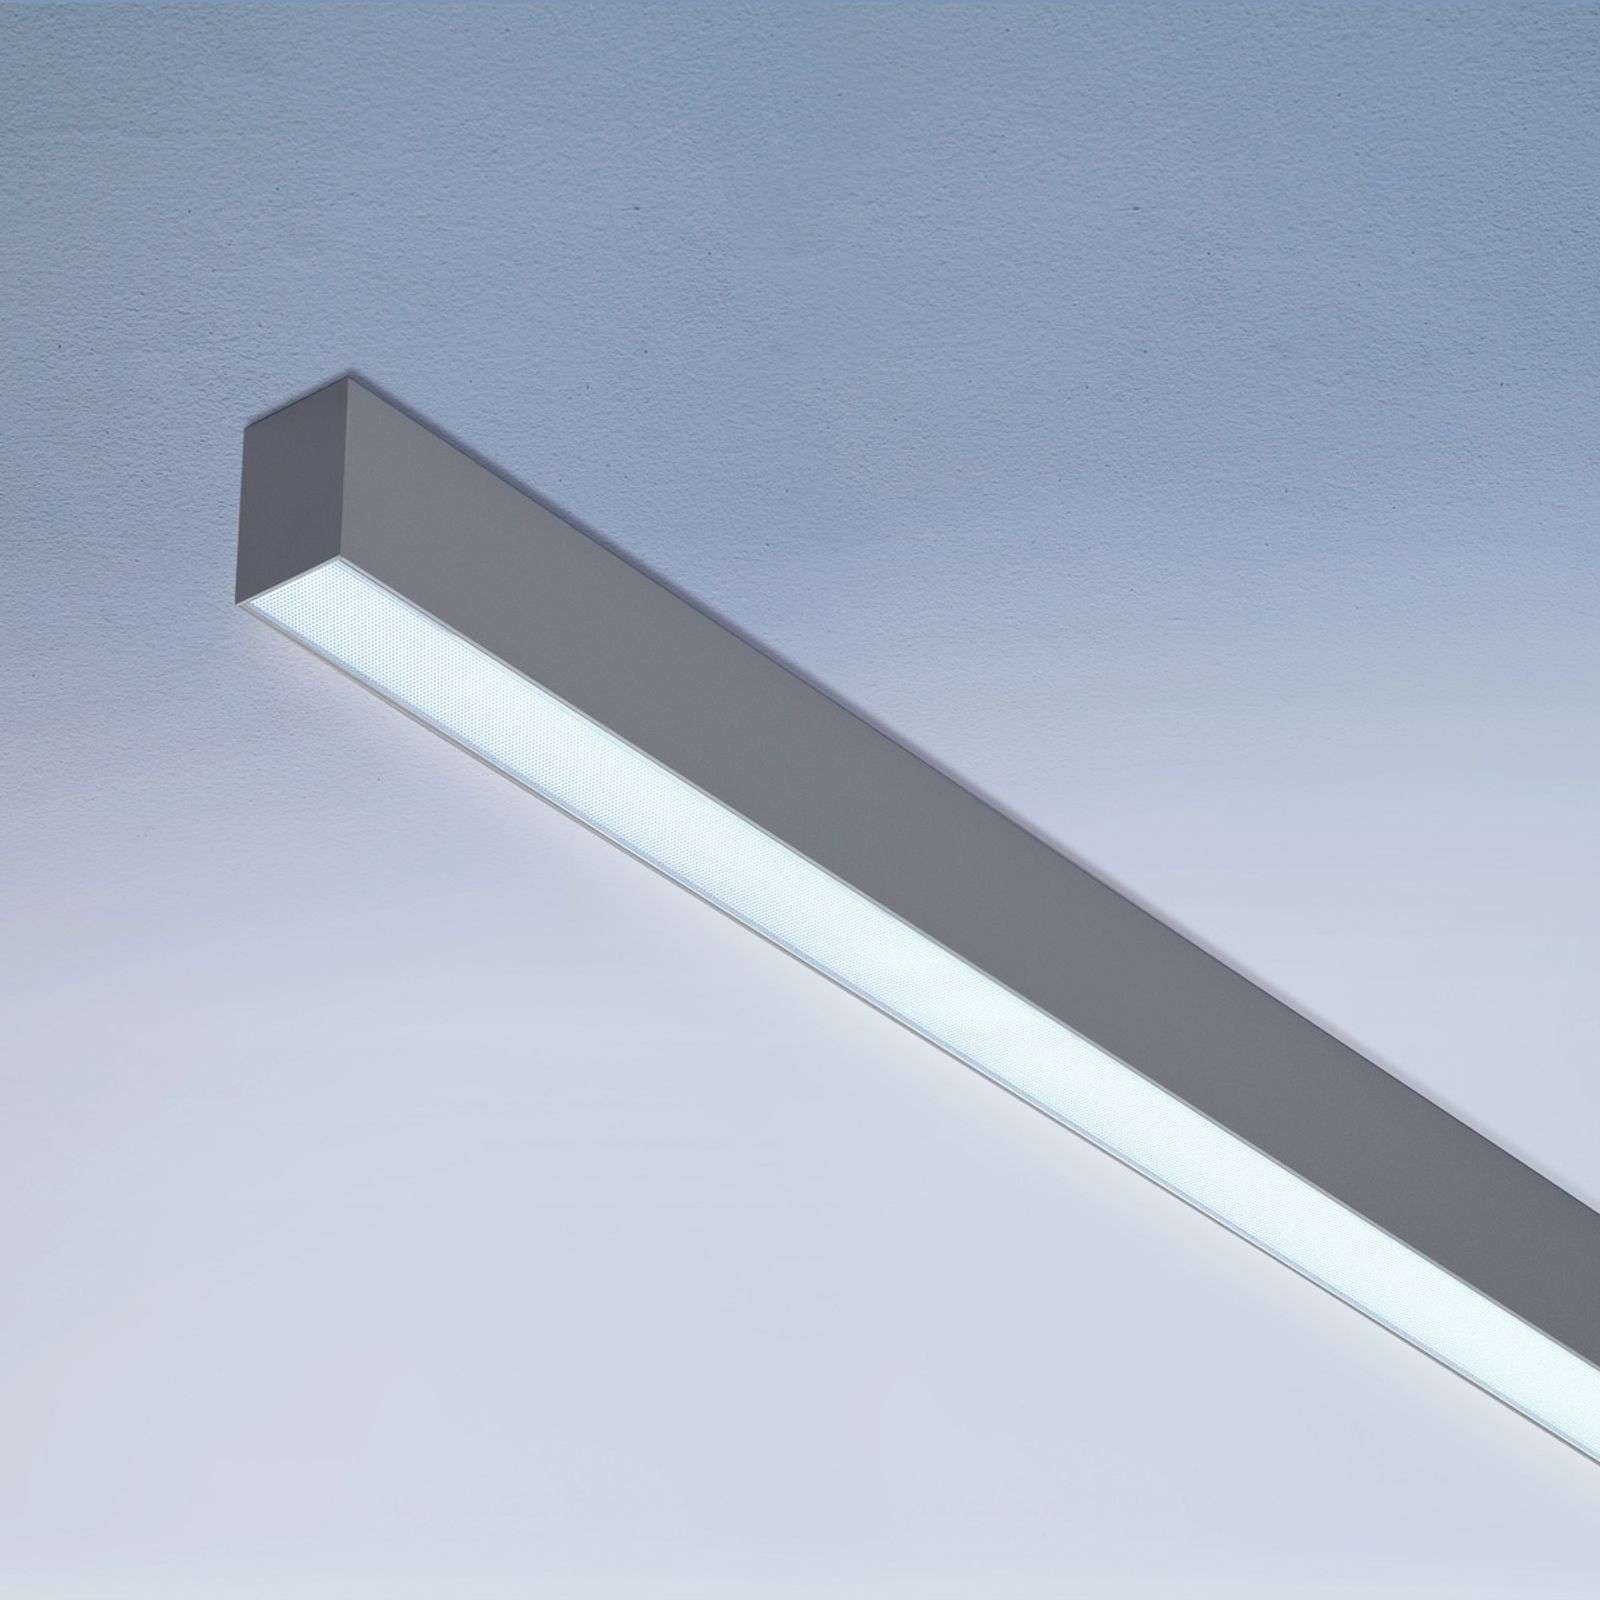 Medium Power - applique LED Matric-A3 176,5 cm